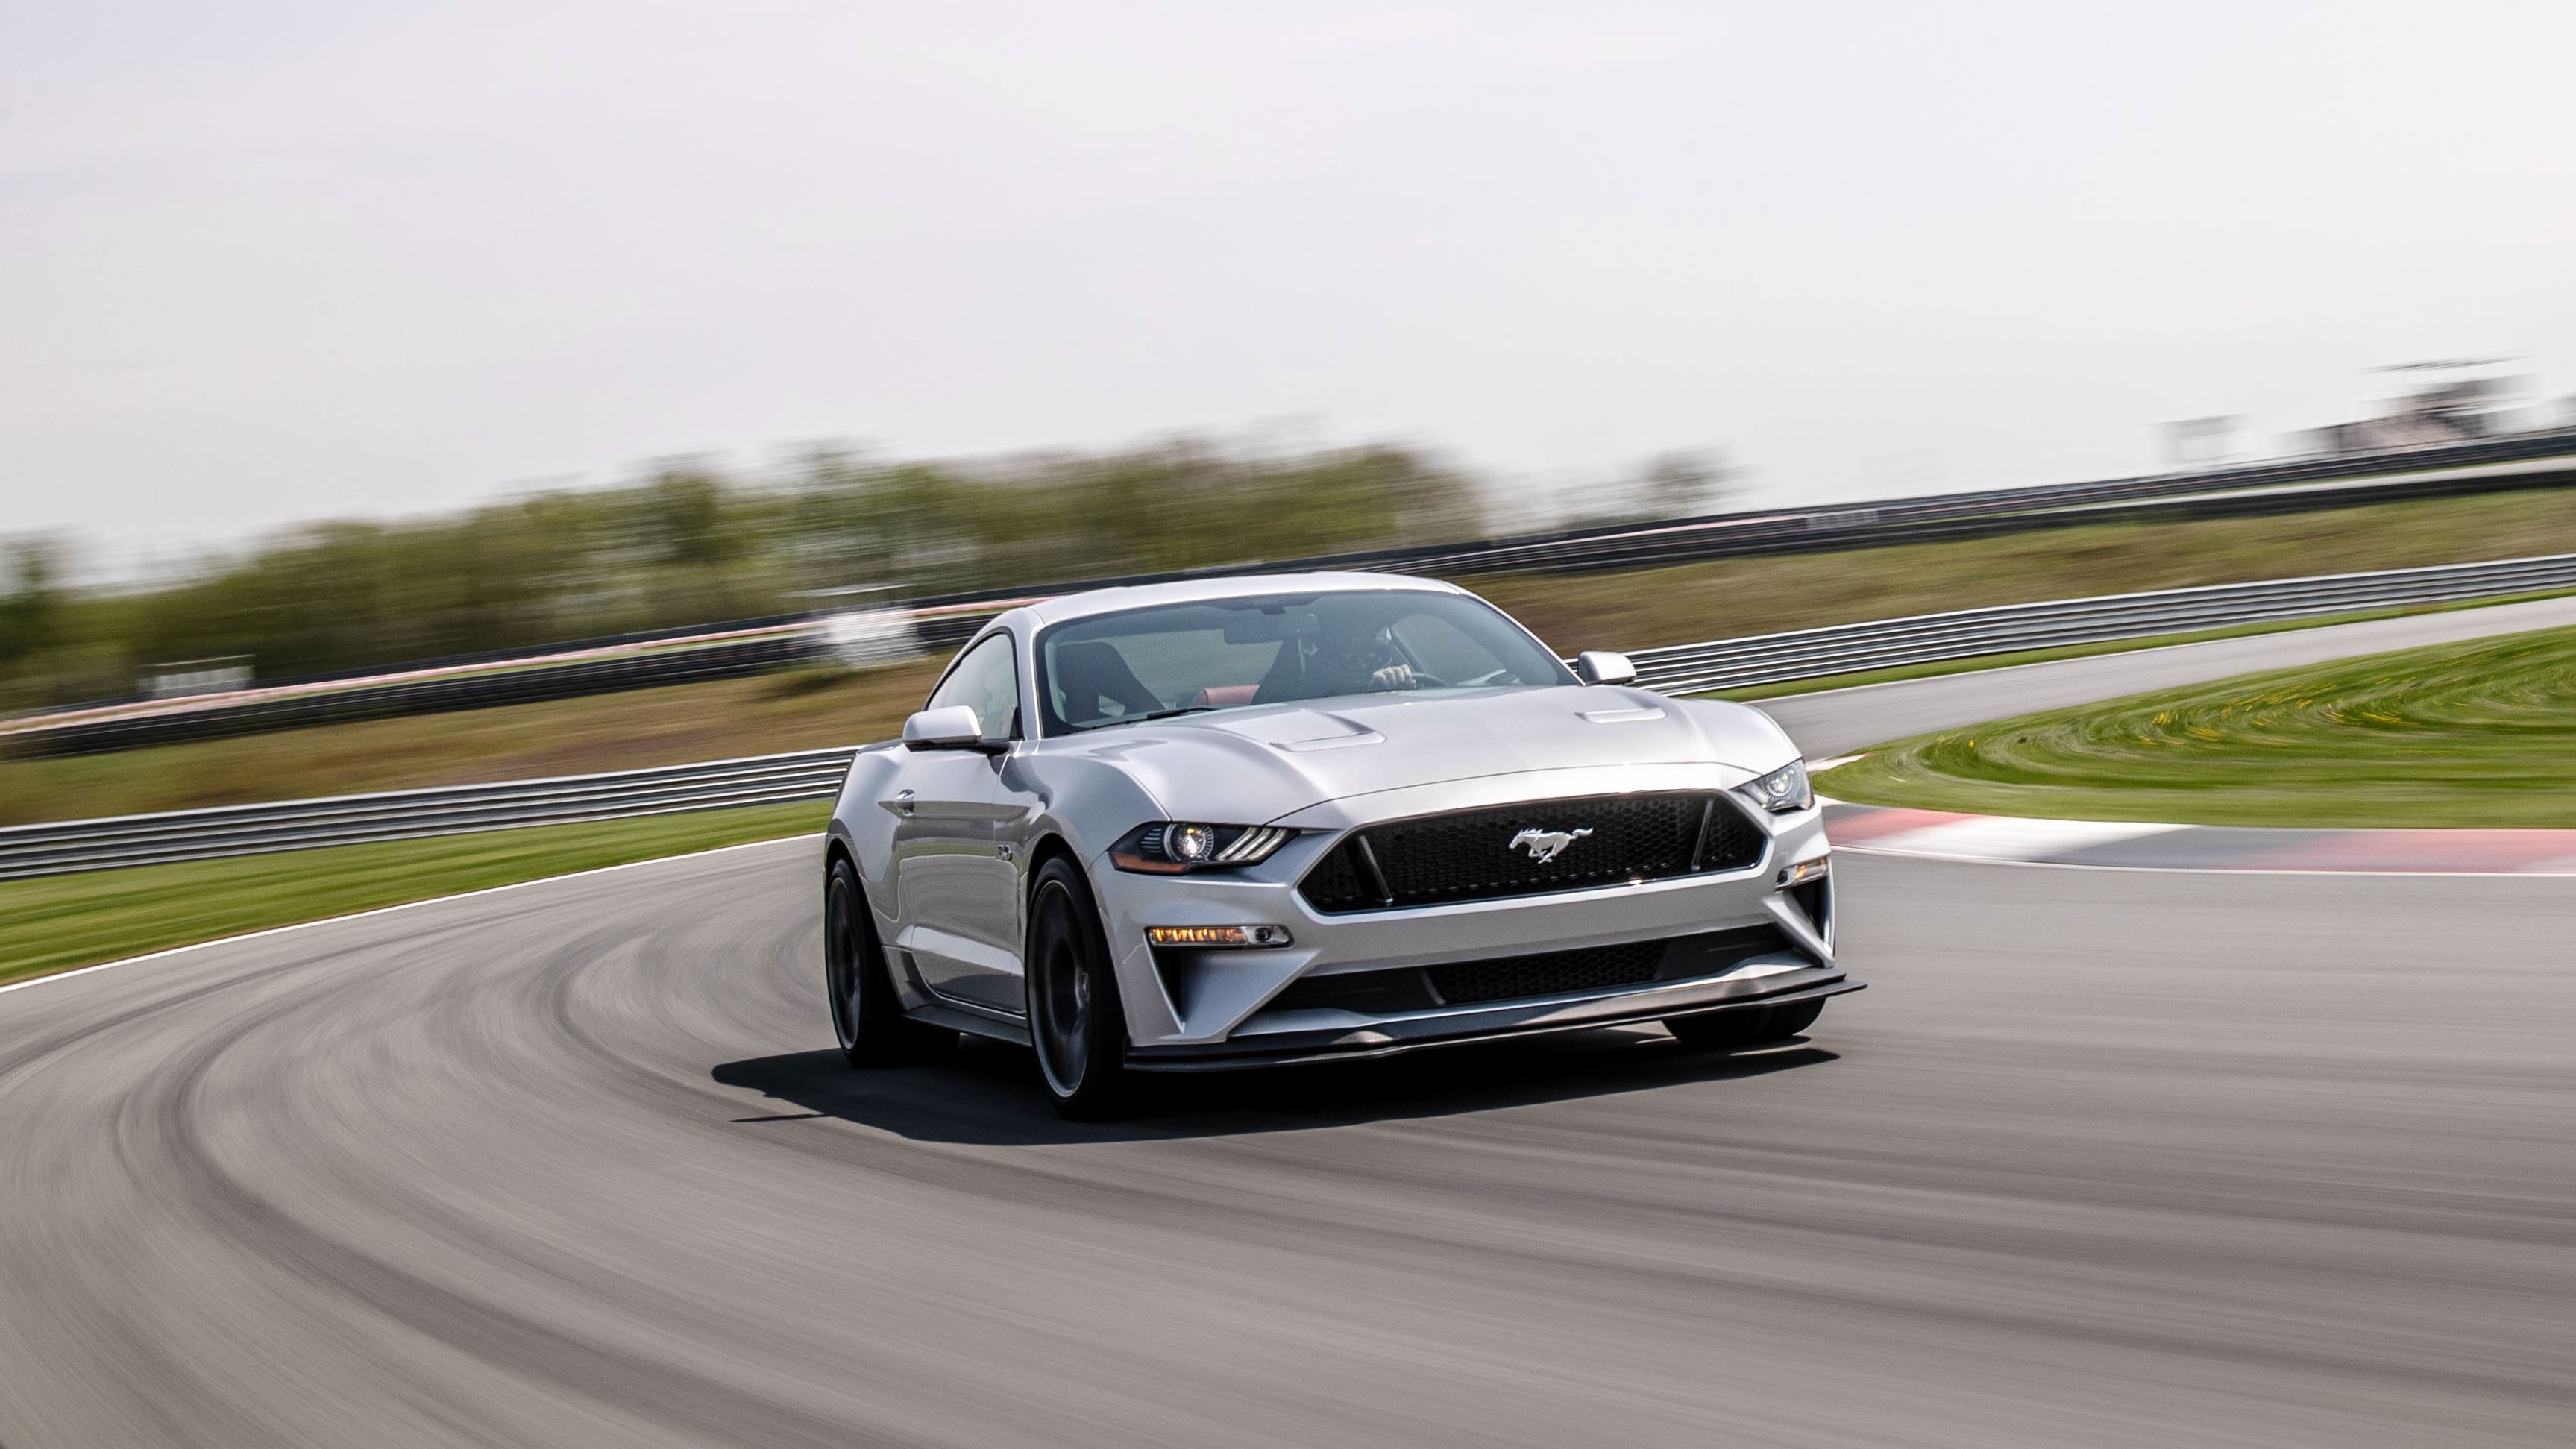 2018 Ford Mustang GT Performance Pack 2 on track corner carver